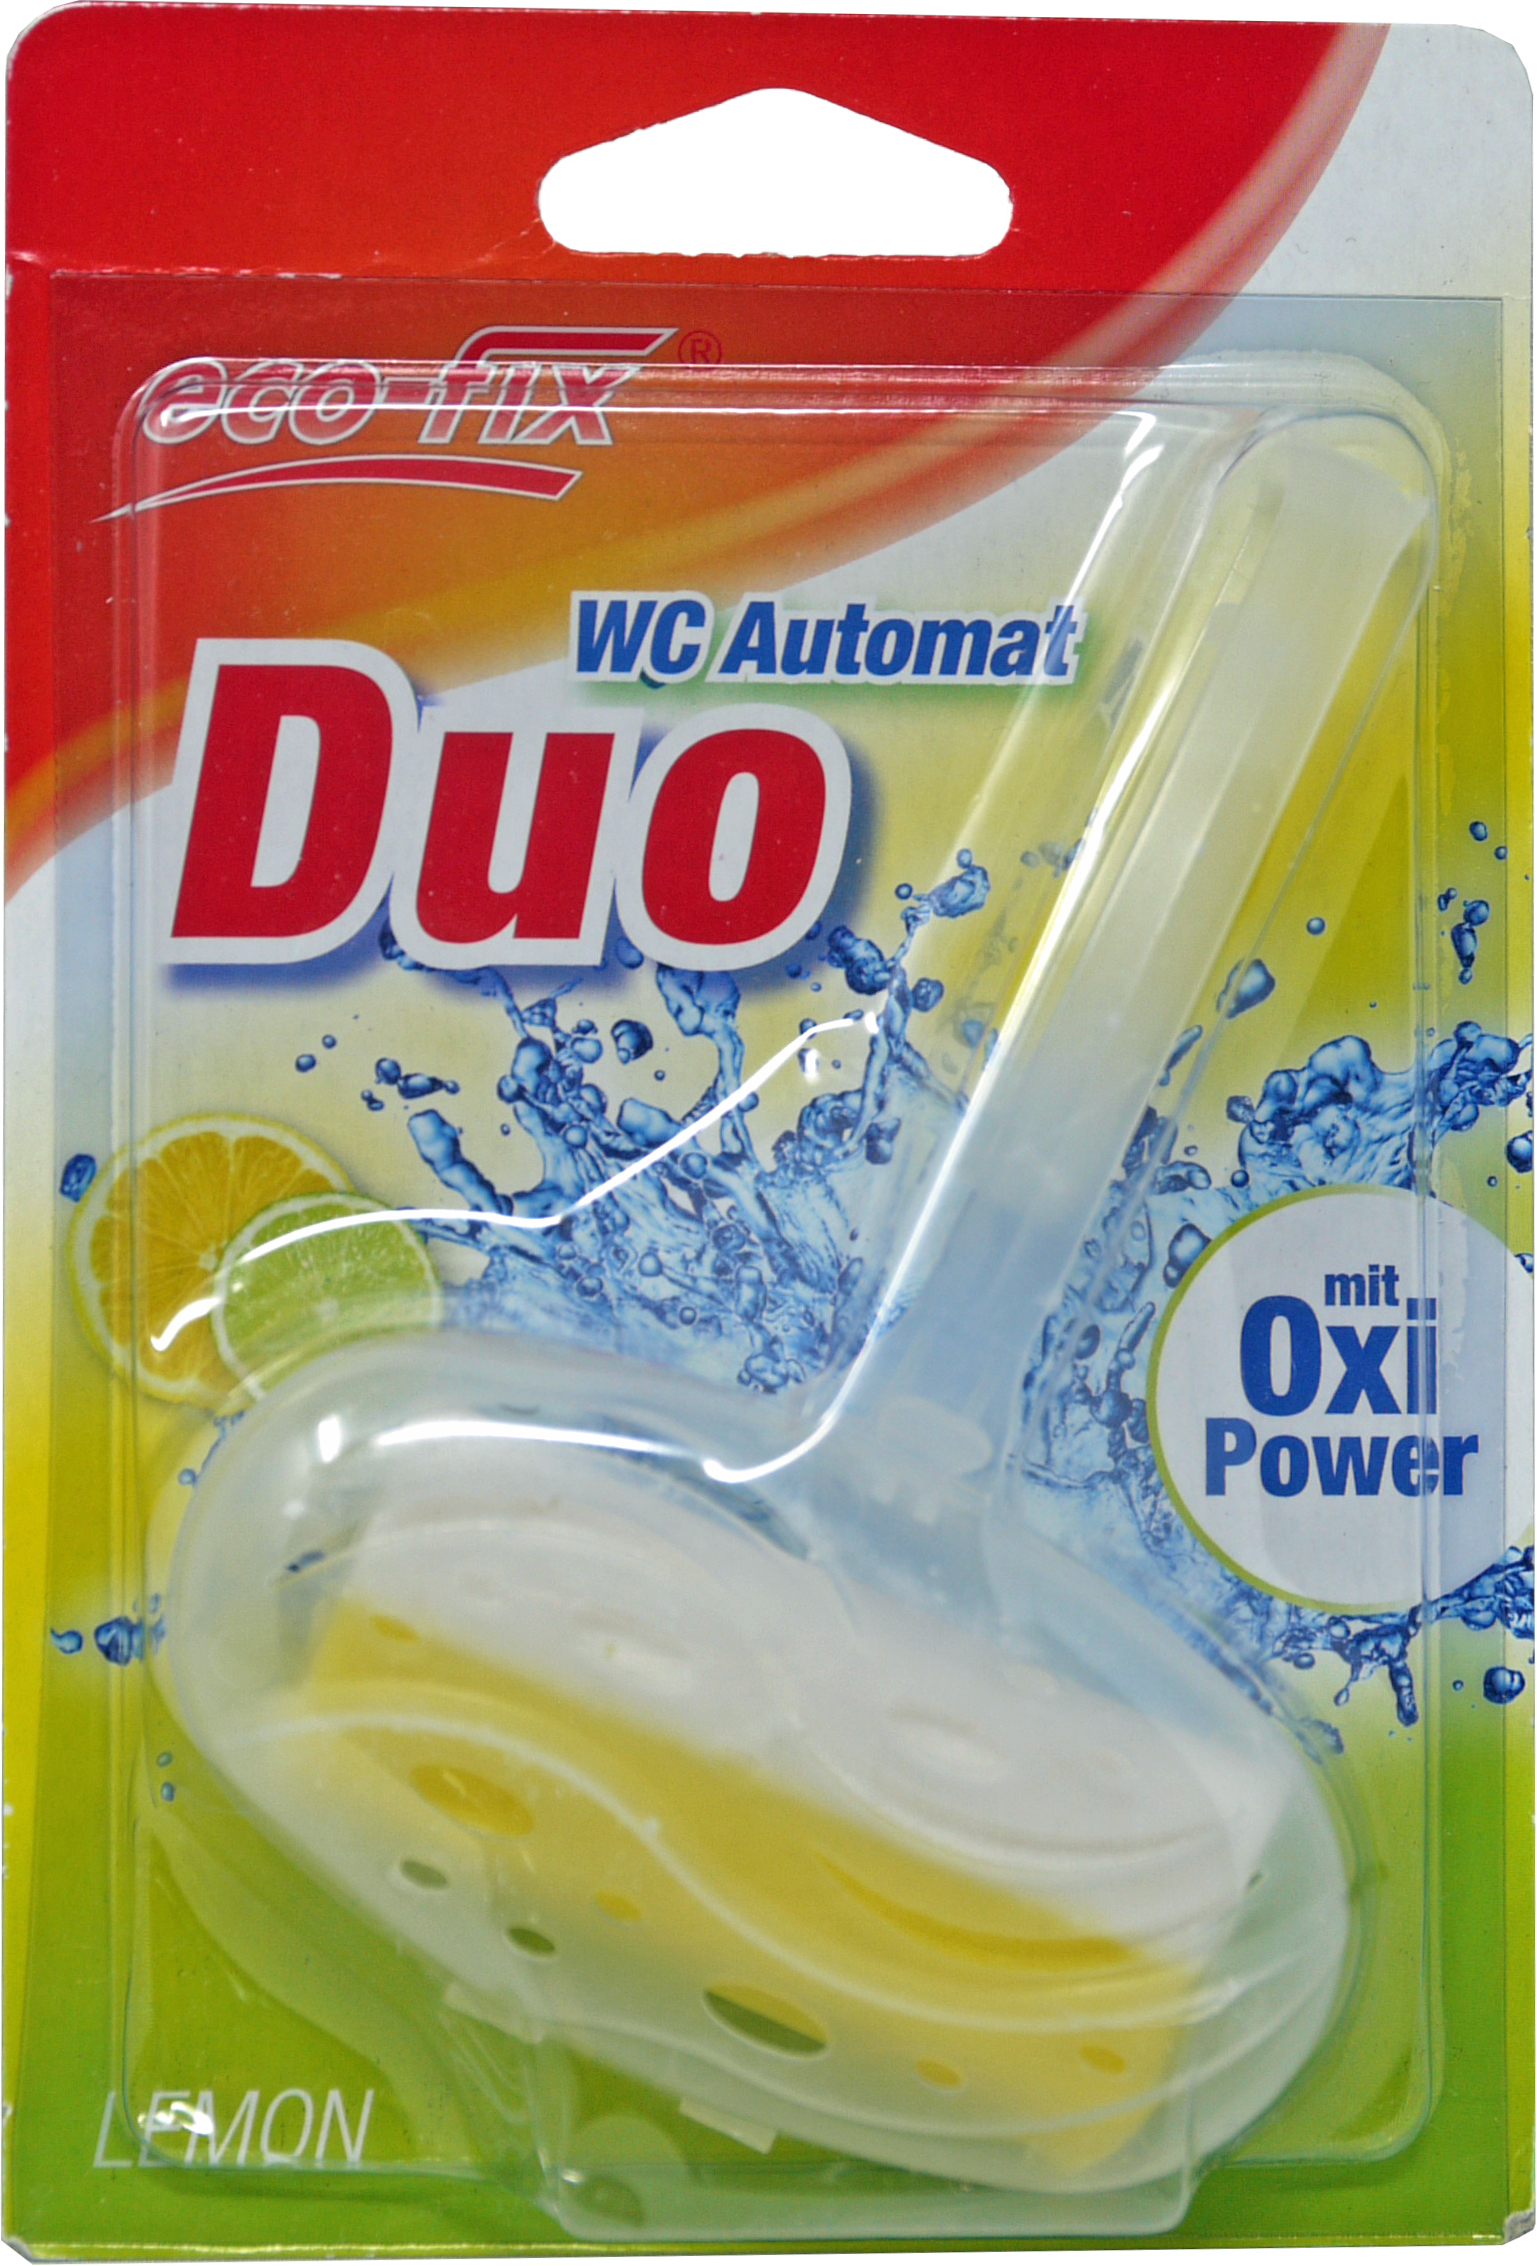 00874 - eco-fix WC Automat Duo mit Oxi-Power, 40 g., Lemon